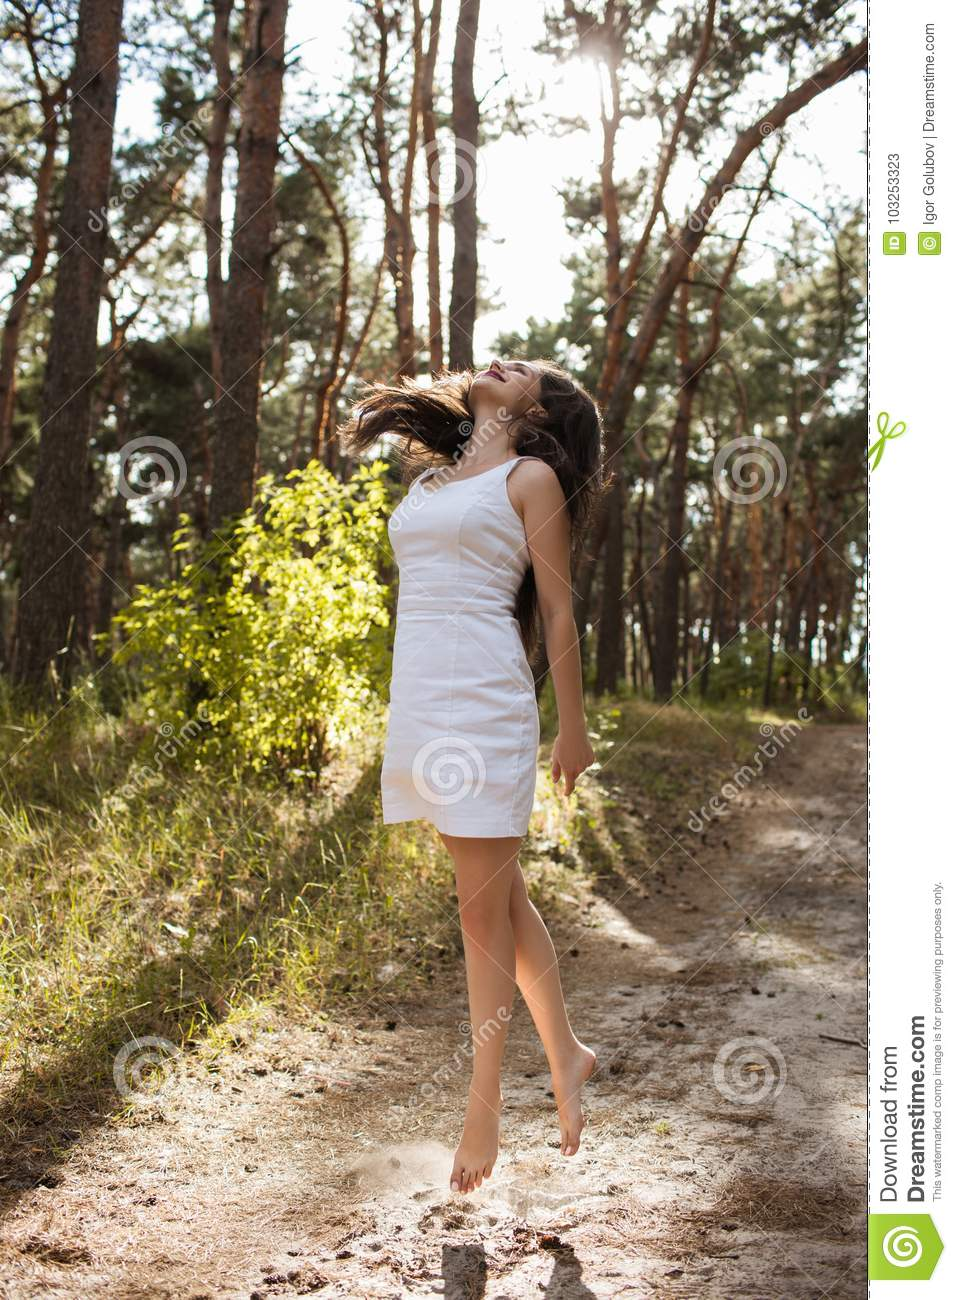 https://thumbs.dreamstime.com/z/healthy-jumping-woman-nature-happiness-concept-inspiration-inner-harmony-healthy-jumping-woman-nature-happiness-concept-103253323.jpg